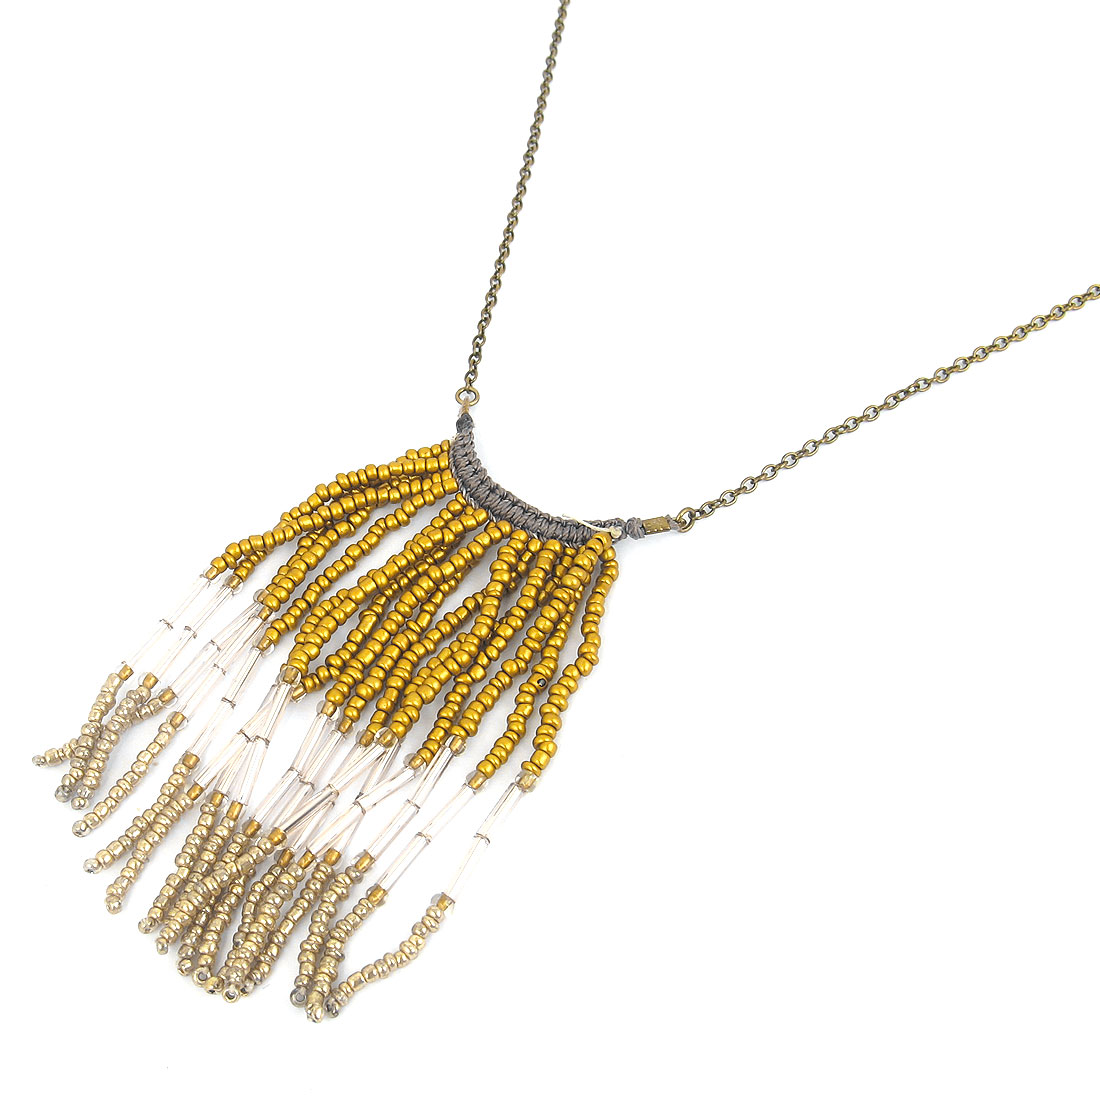 Lady Dimgray Nylon Cord Plastic Beads Tassels Design Pendant Metal Lobster Buckle Bronze Tone Strip Slim Chain Necklace Neckwear Collar Dark Yellow